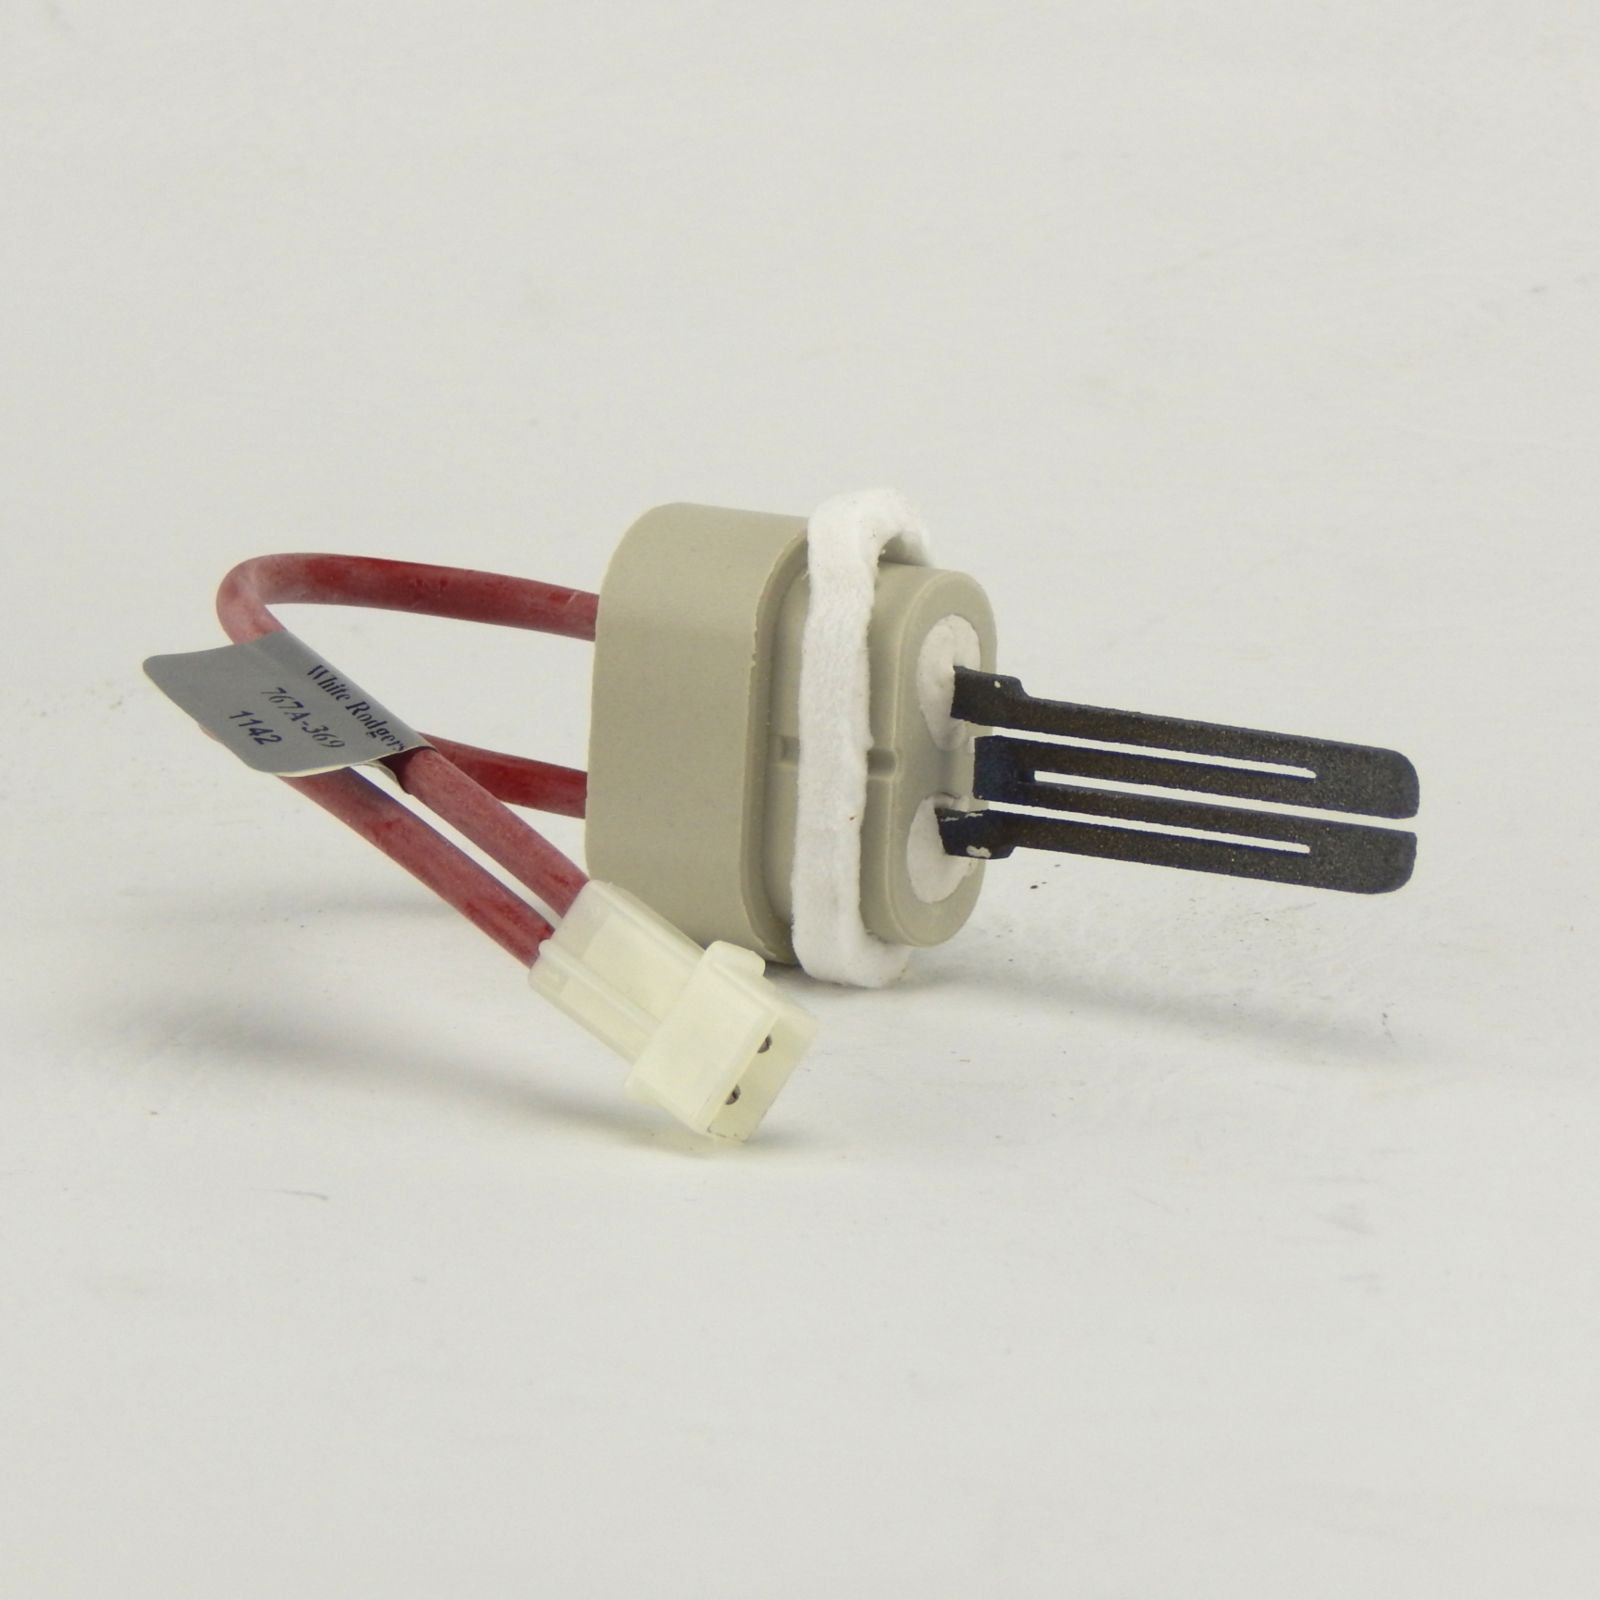 "White-Rodgers 767A-369 - White-Rogers Silicon Carbide Hot Surface Ignitor With 5-1/2"" Leads"